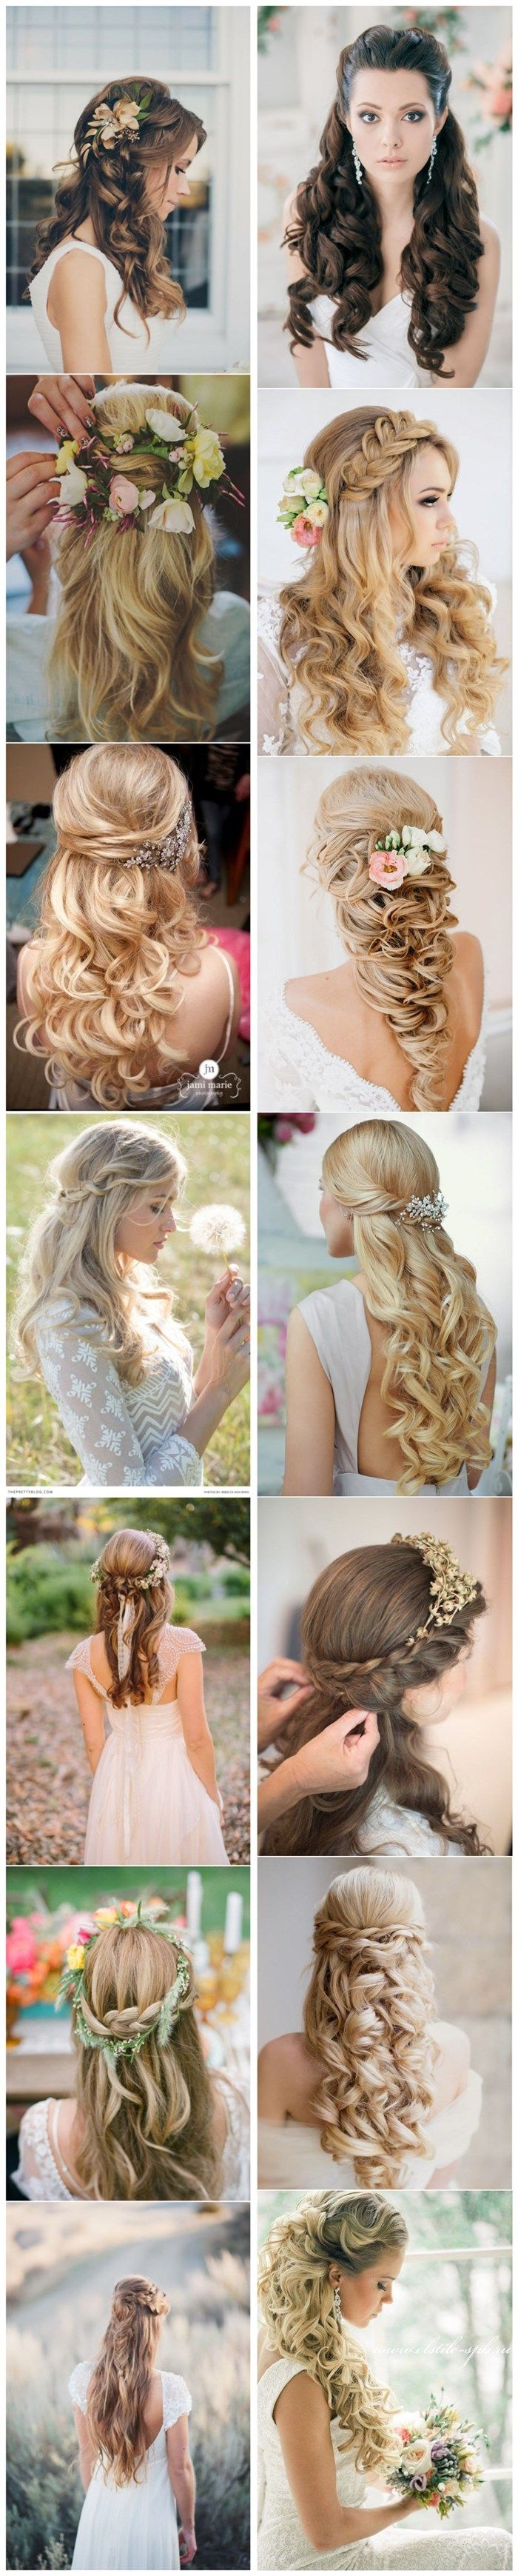 21 best Wedding Hairstyles images on Pinterest